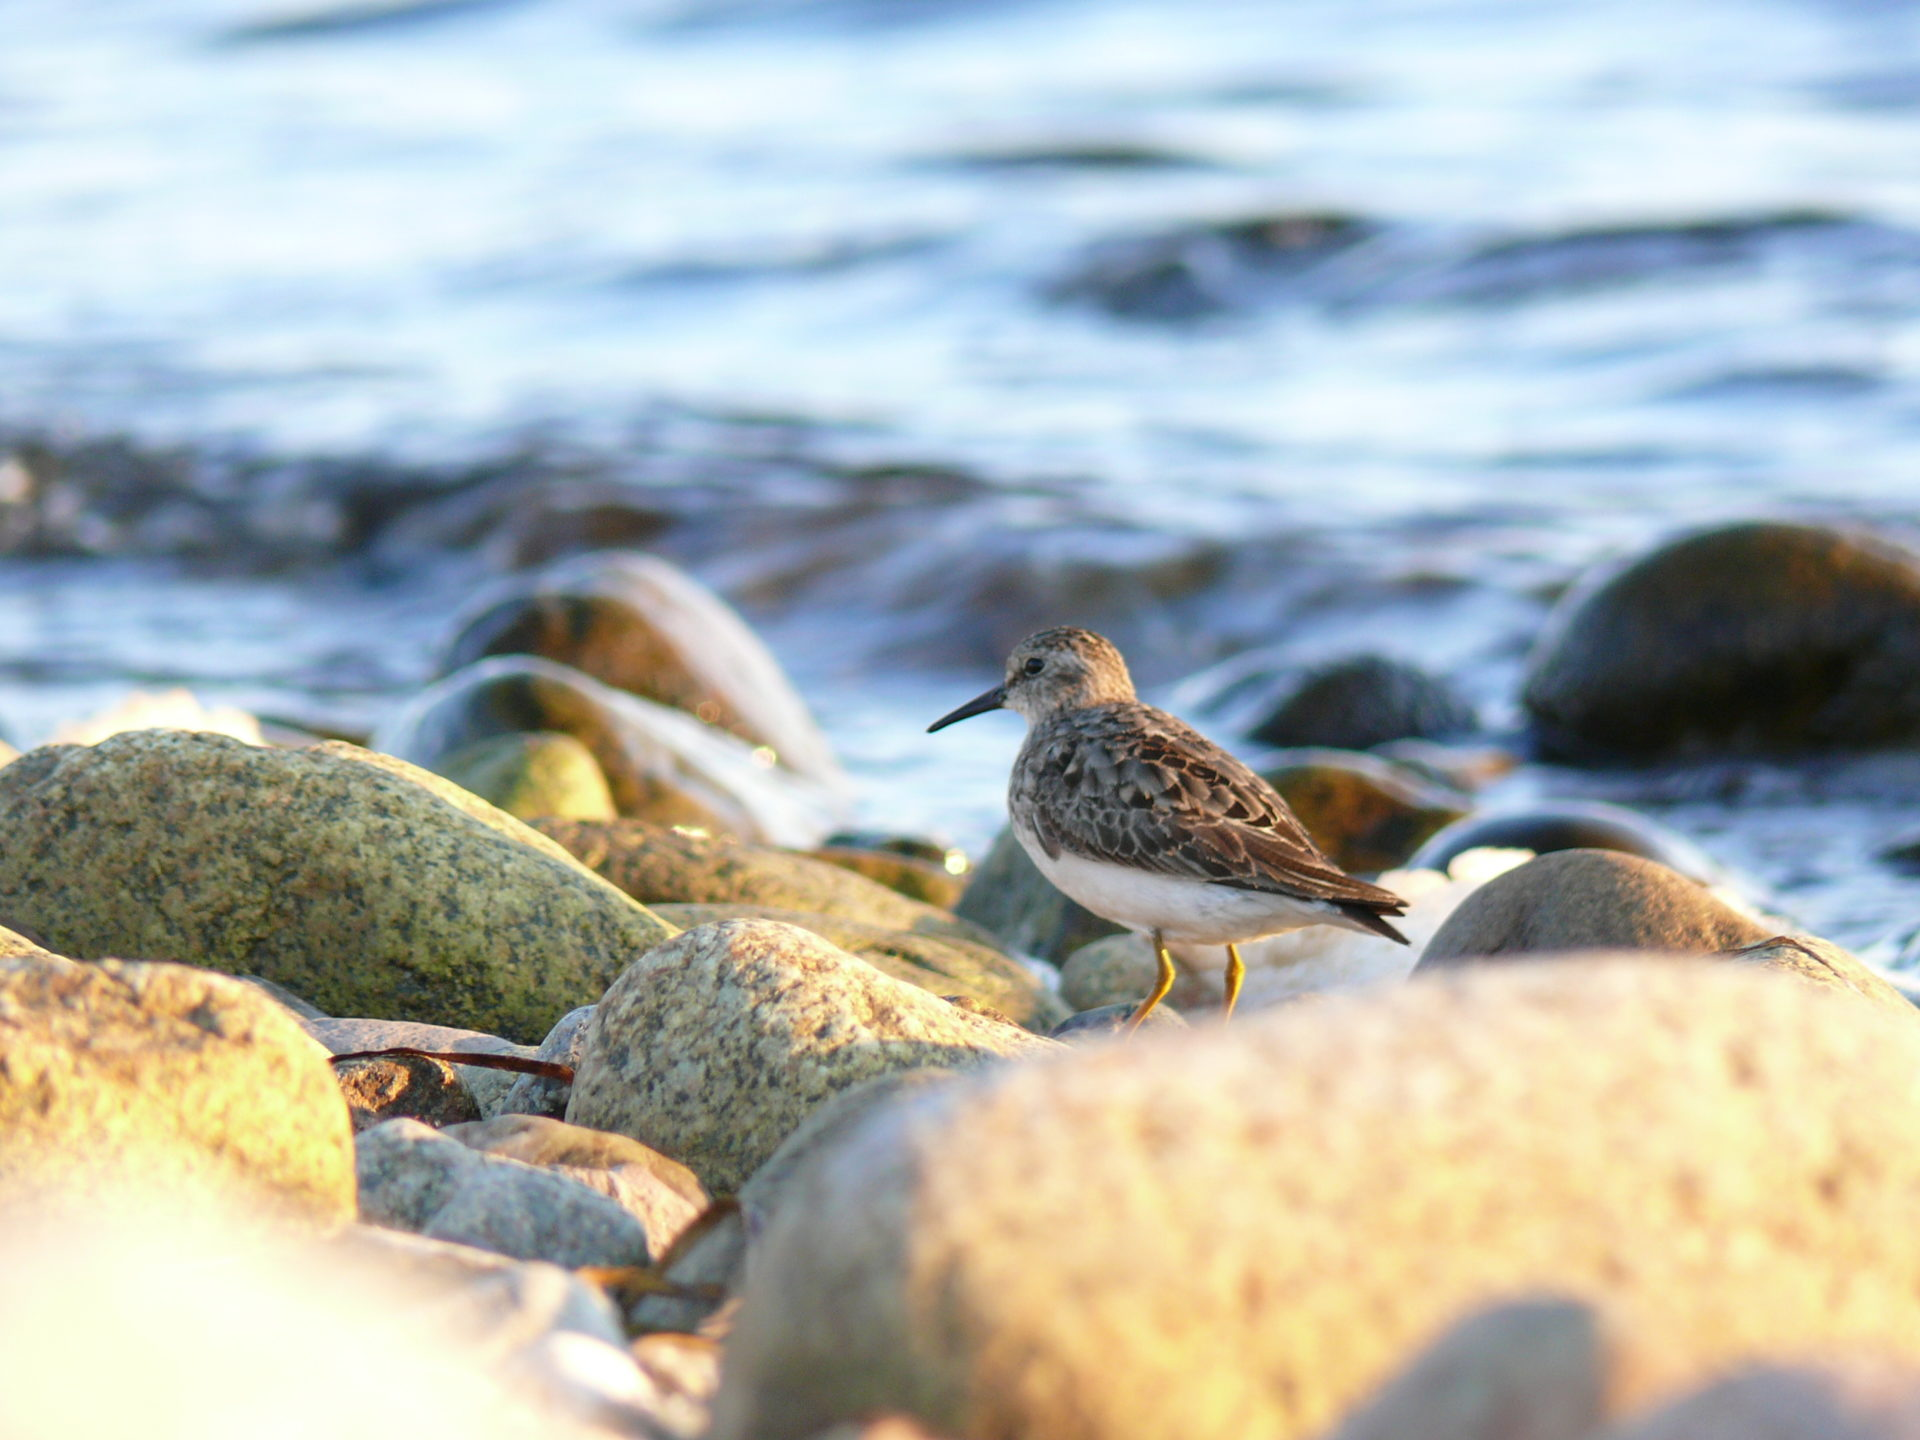 Semipalmated sandpiper on the shore of the Bras d'Or Lake, Cape Breton. Photo by Glen Murrant